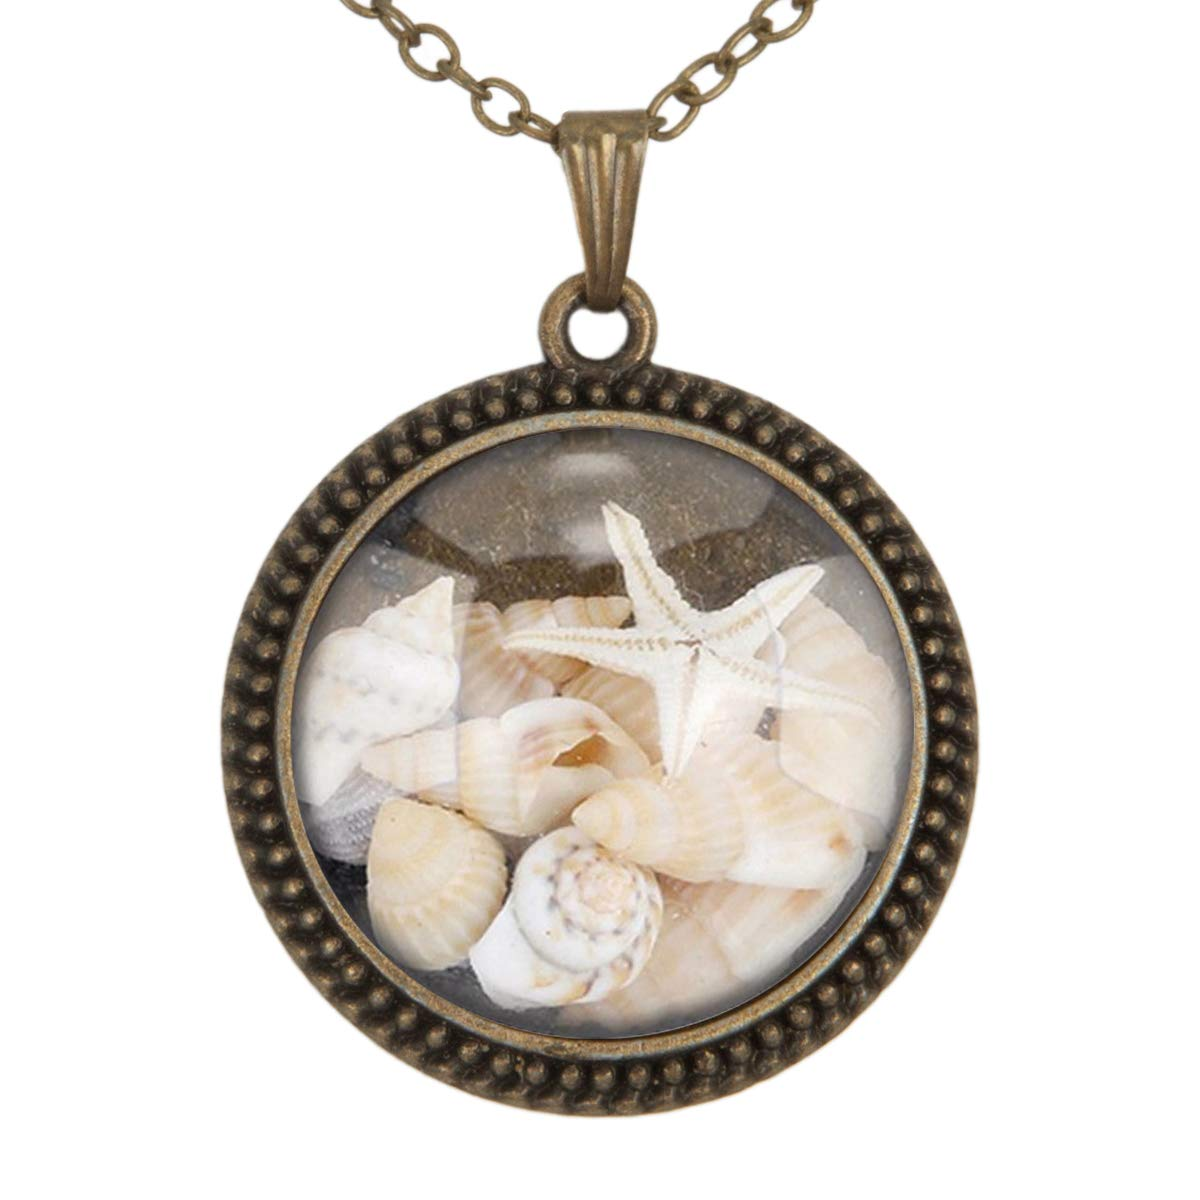 Family Decor Beautiful Conch Seabed Pendant Necklace Cabochon Glass Vintage Bronze Chain Necklace Jewelry Handmade